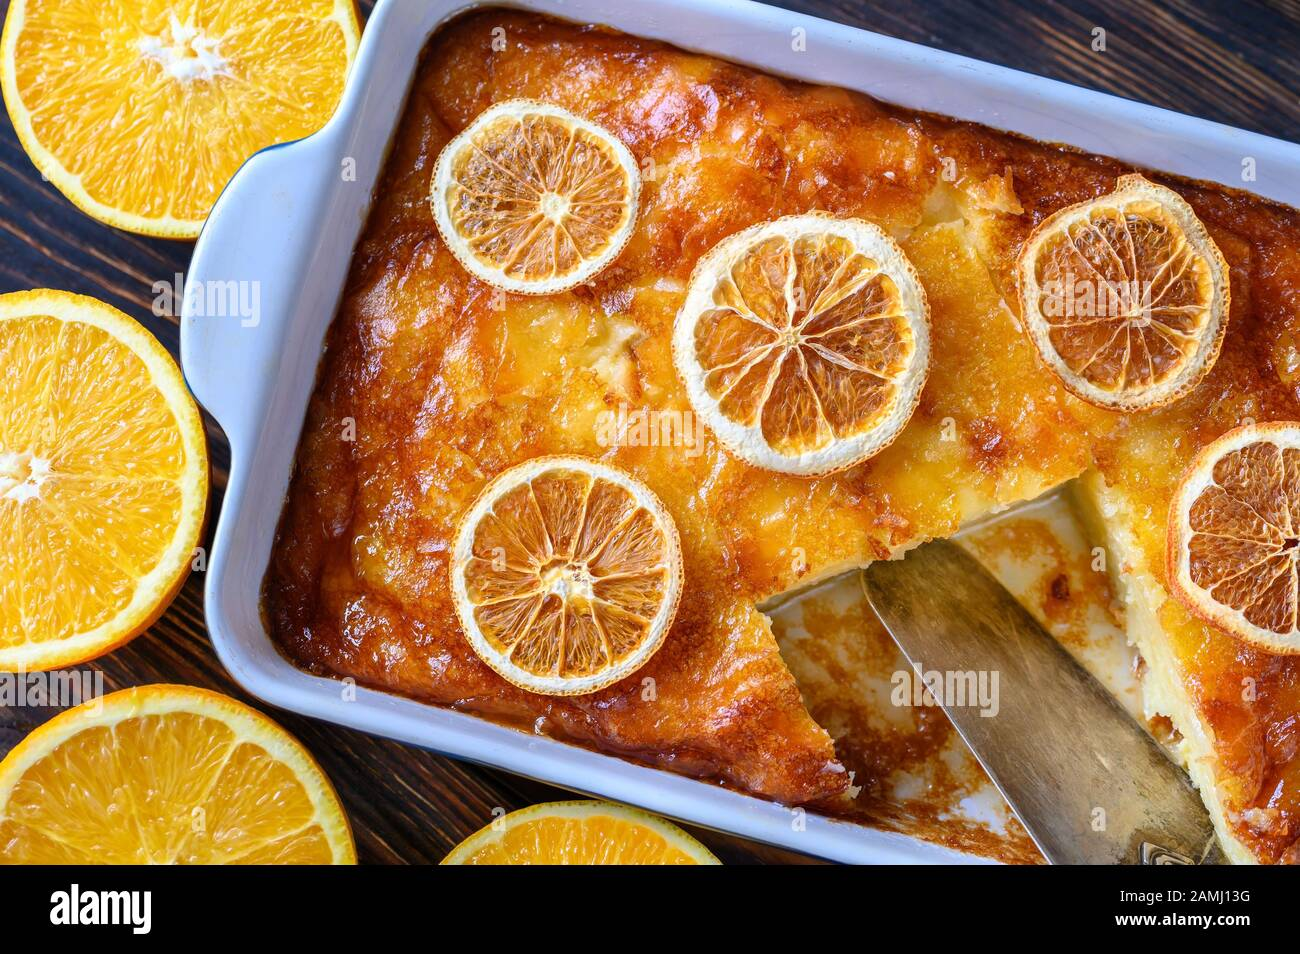 Portokalopita - Greek phyllo orange cake in a baking pan Stock Photo